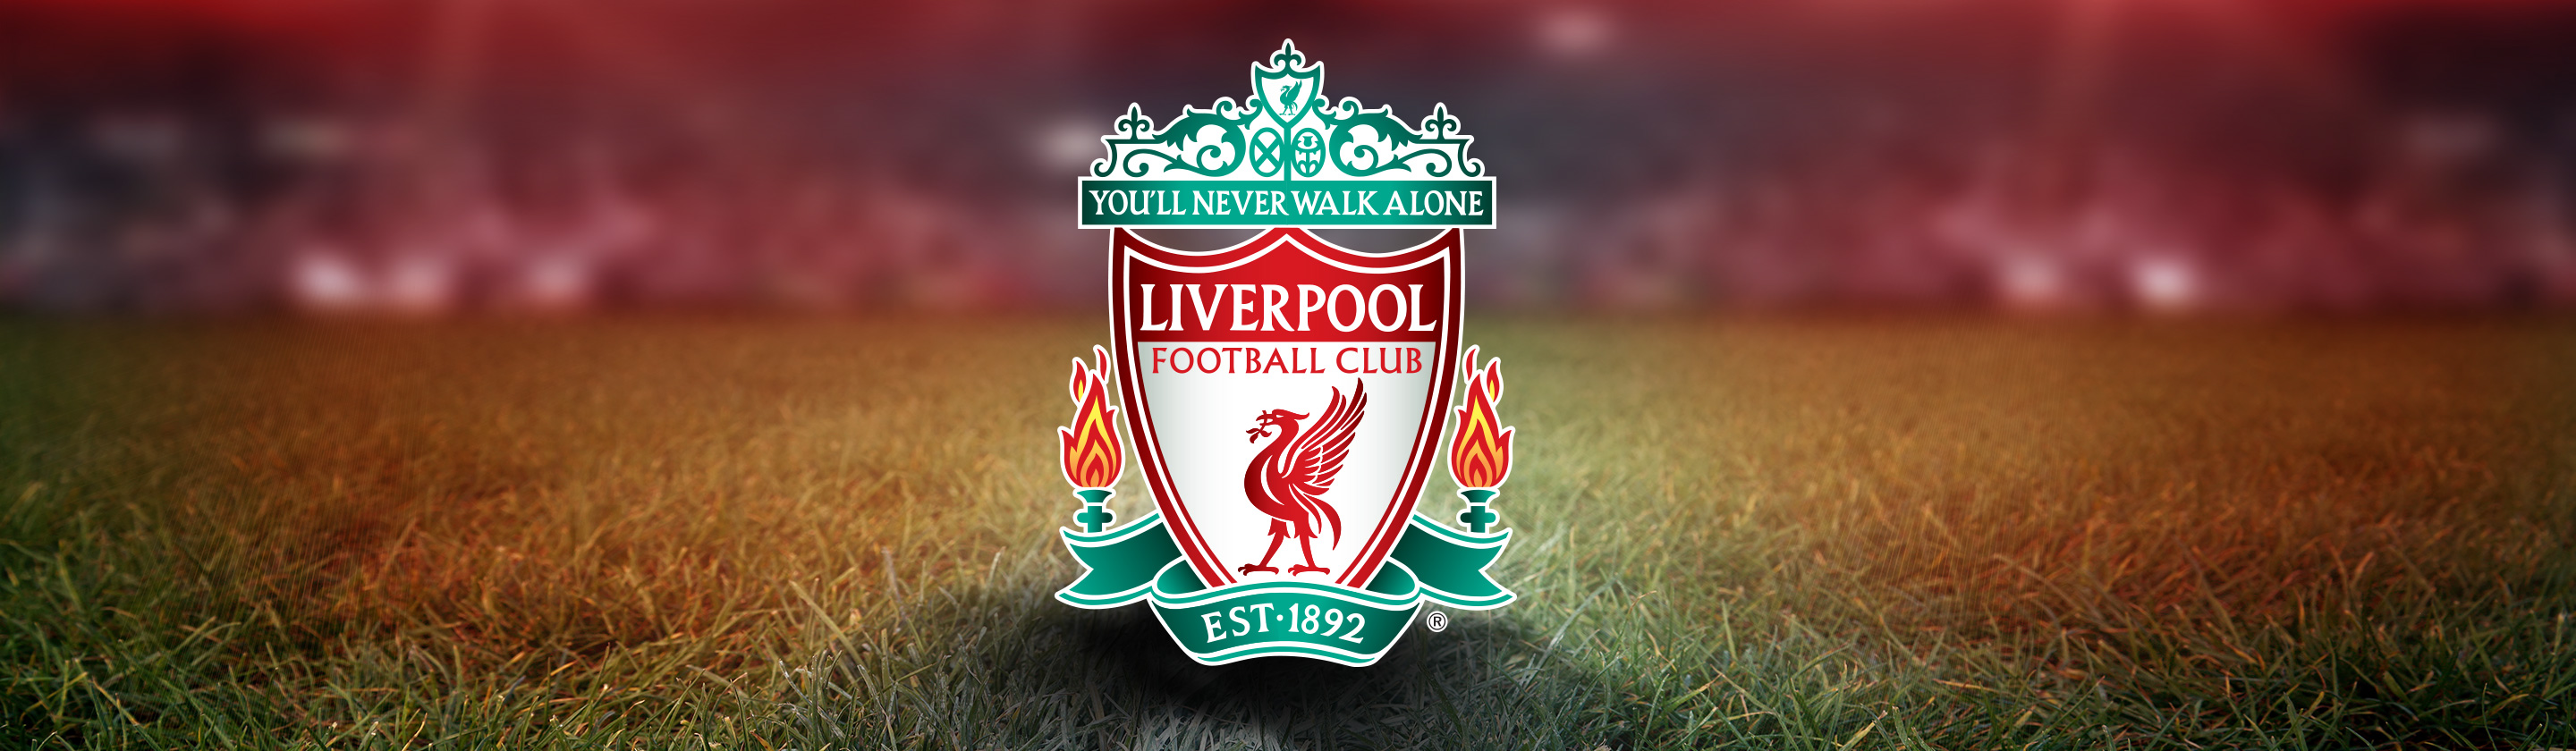 About LFC